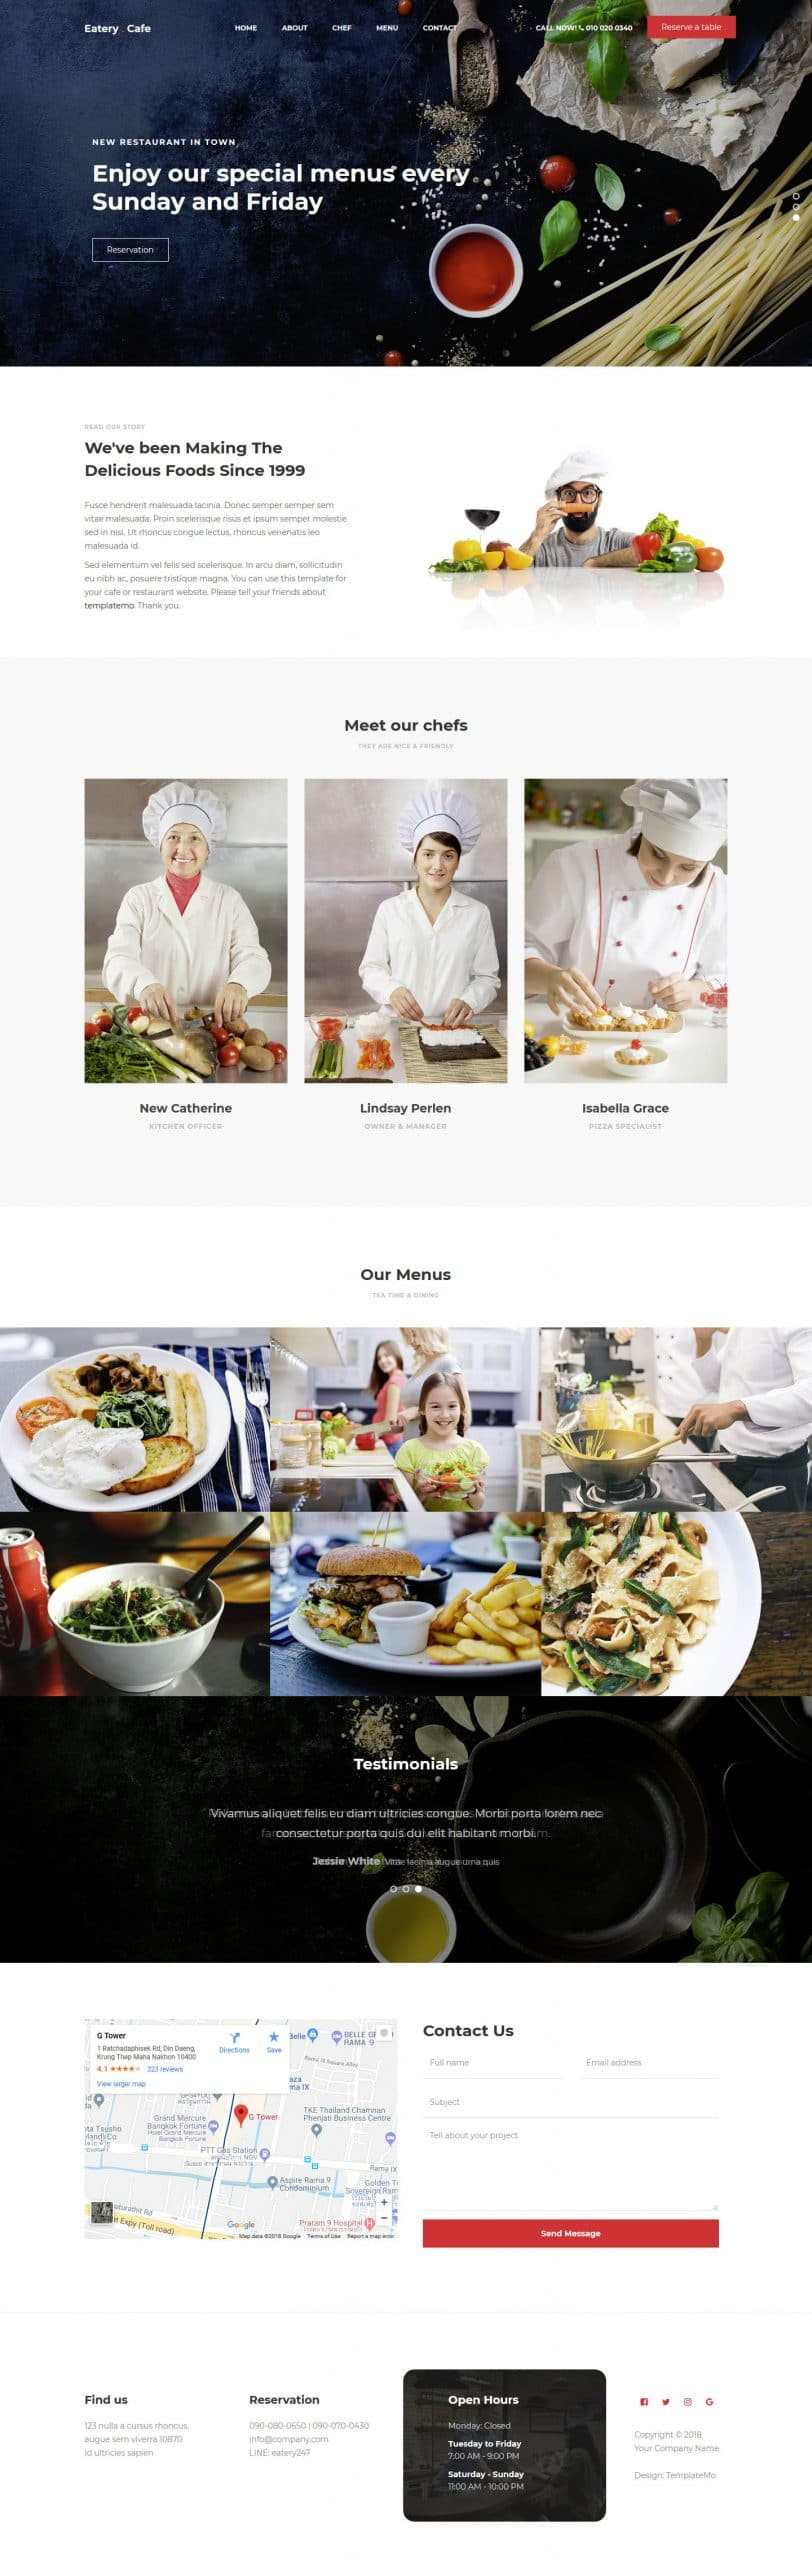 Eatery - HTML Template for cafe websites